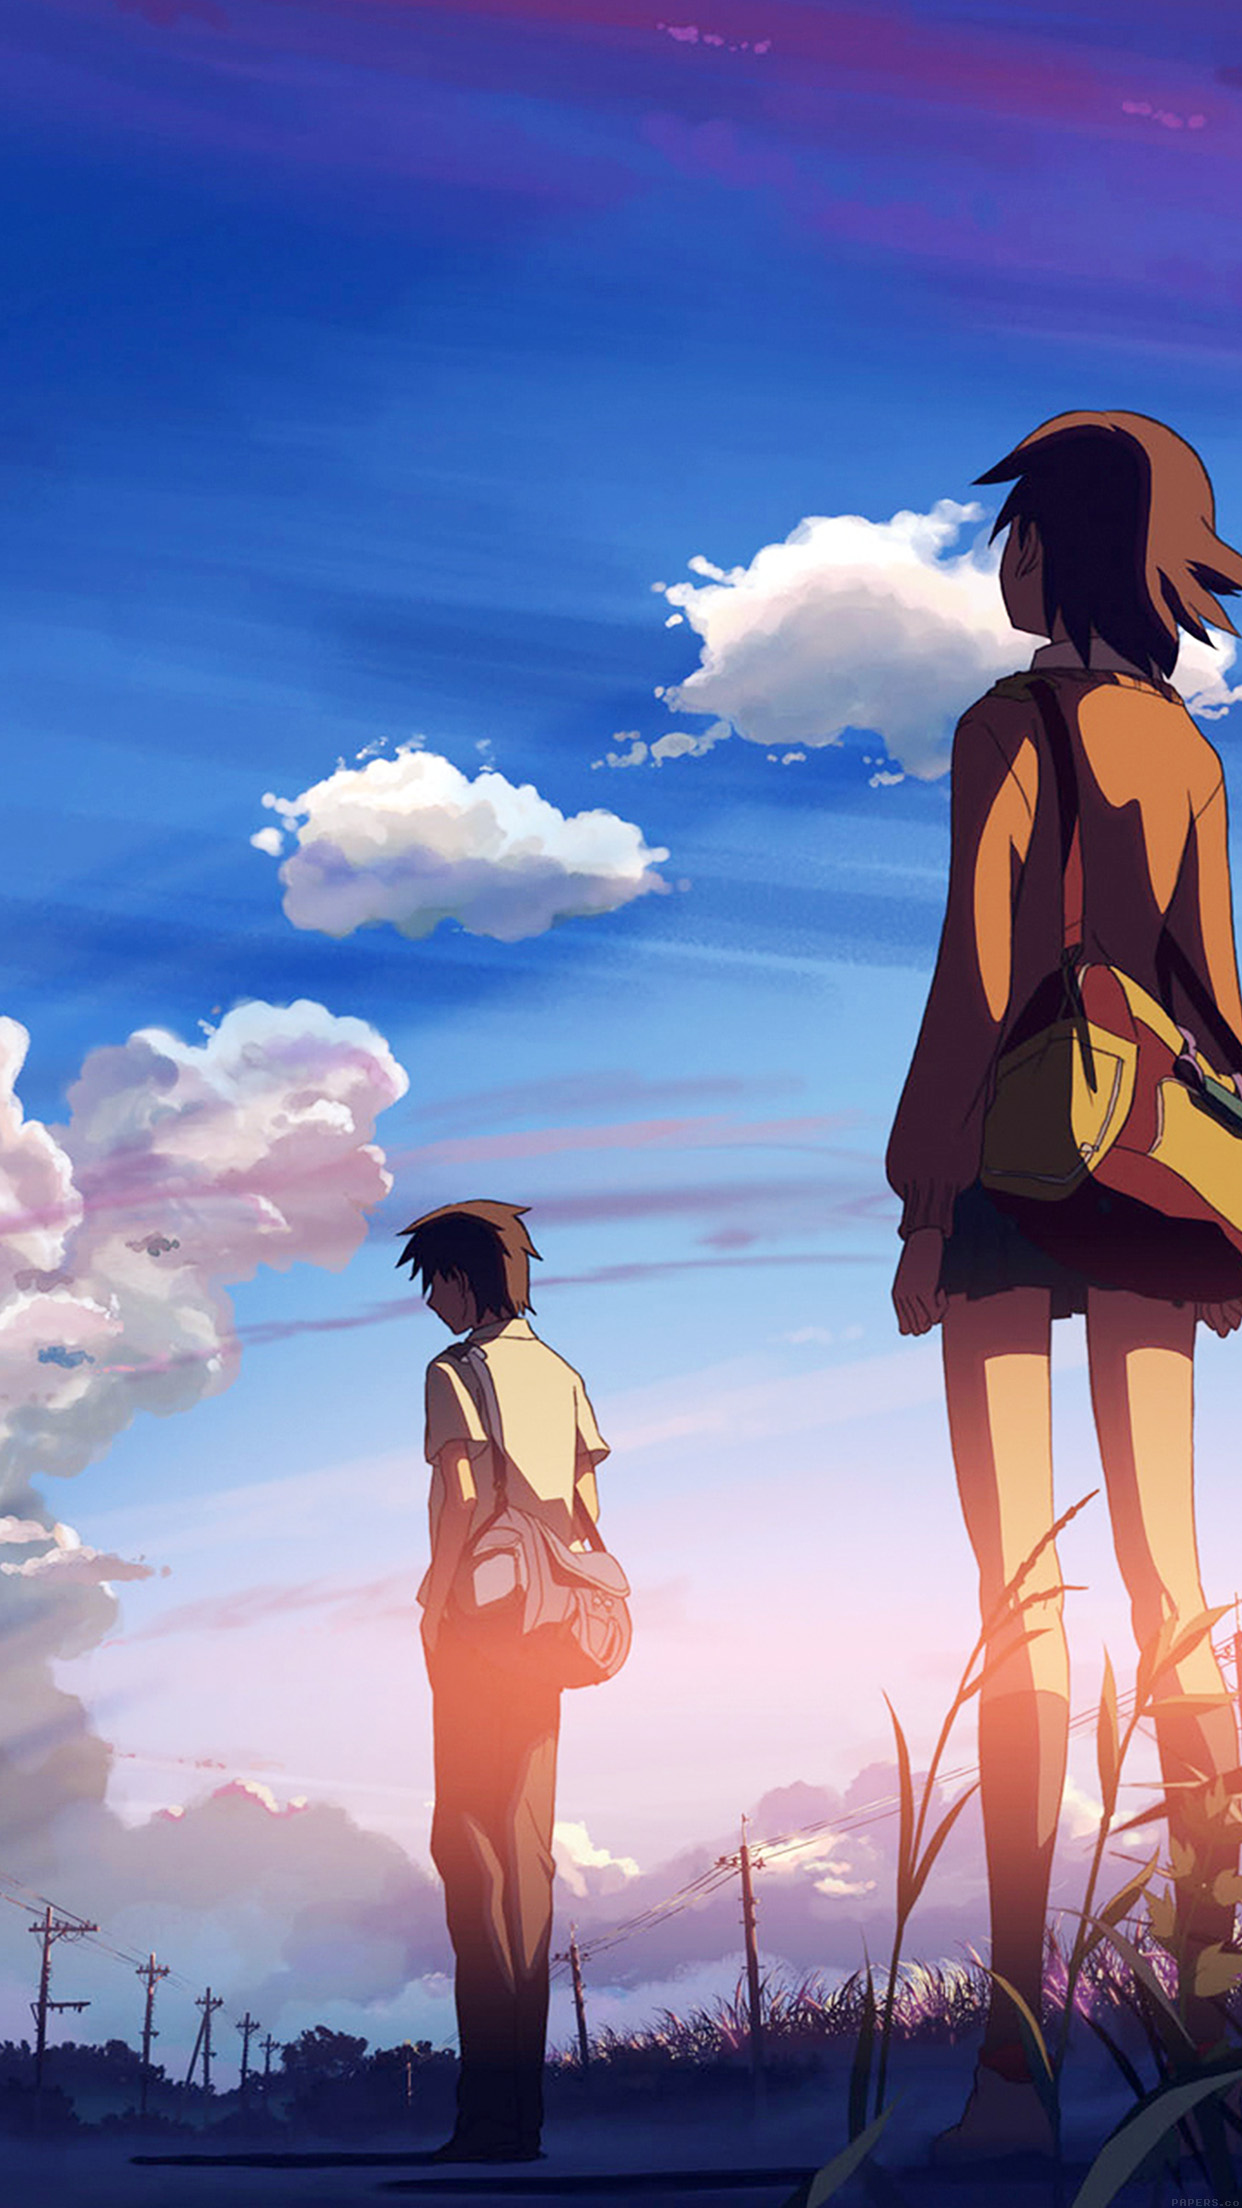 Best Cartoon Love HD Wallpaper For Android - Departure-Love-Anime-Illust-Art  HD_799660.jpg